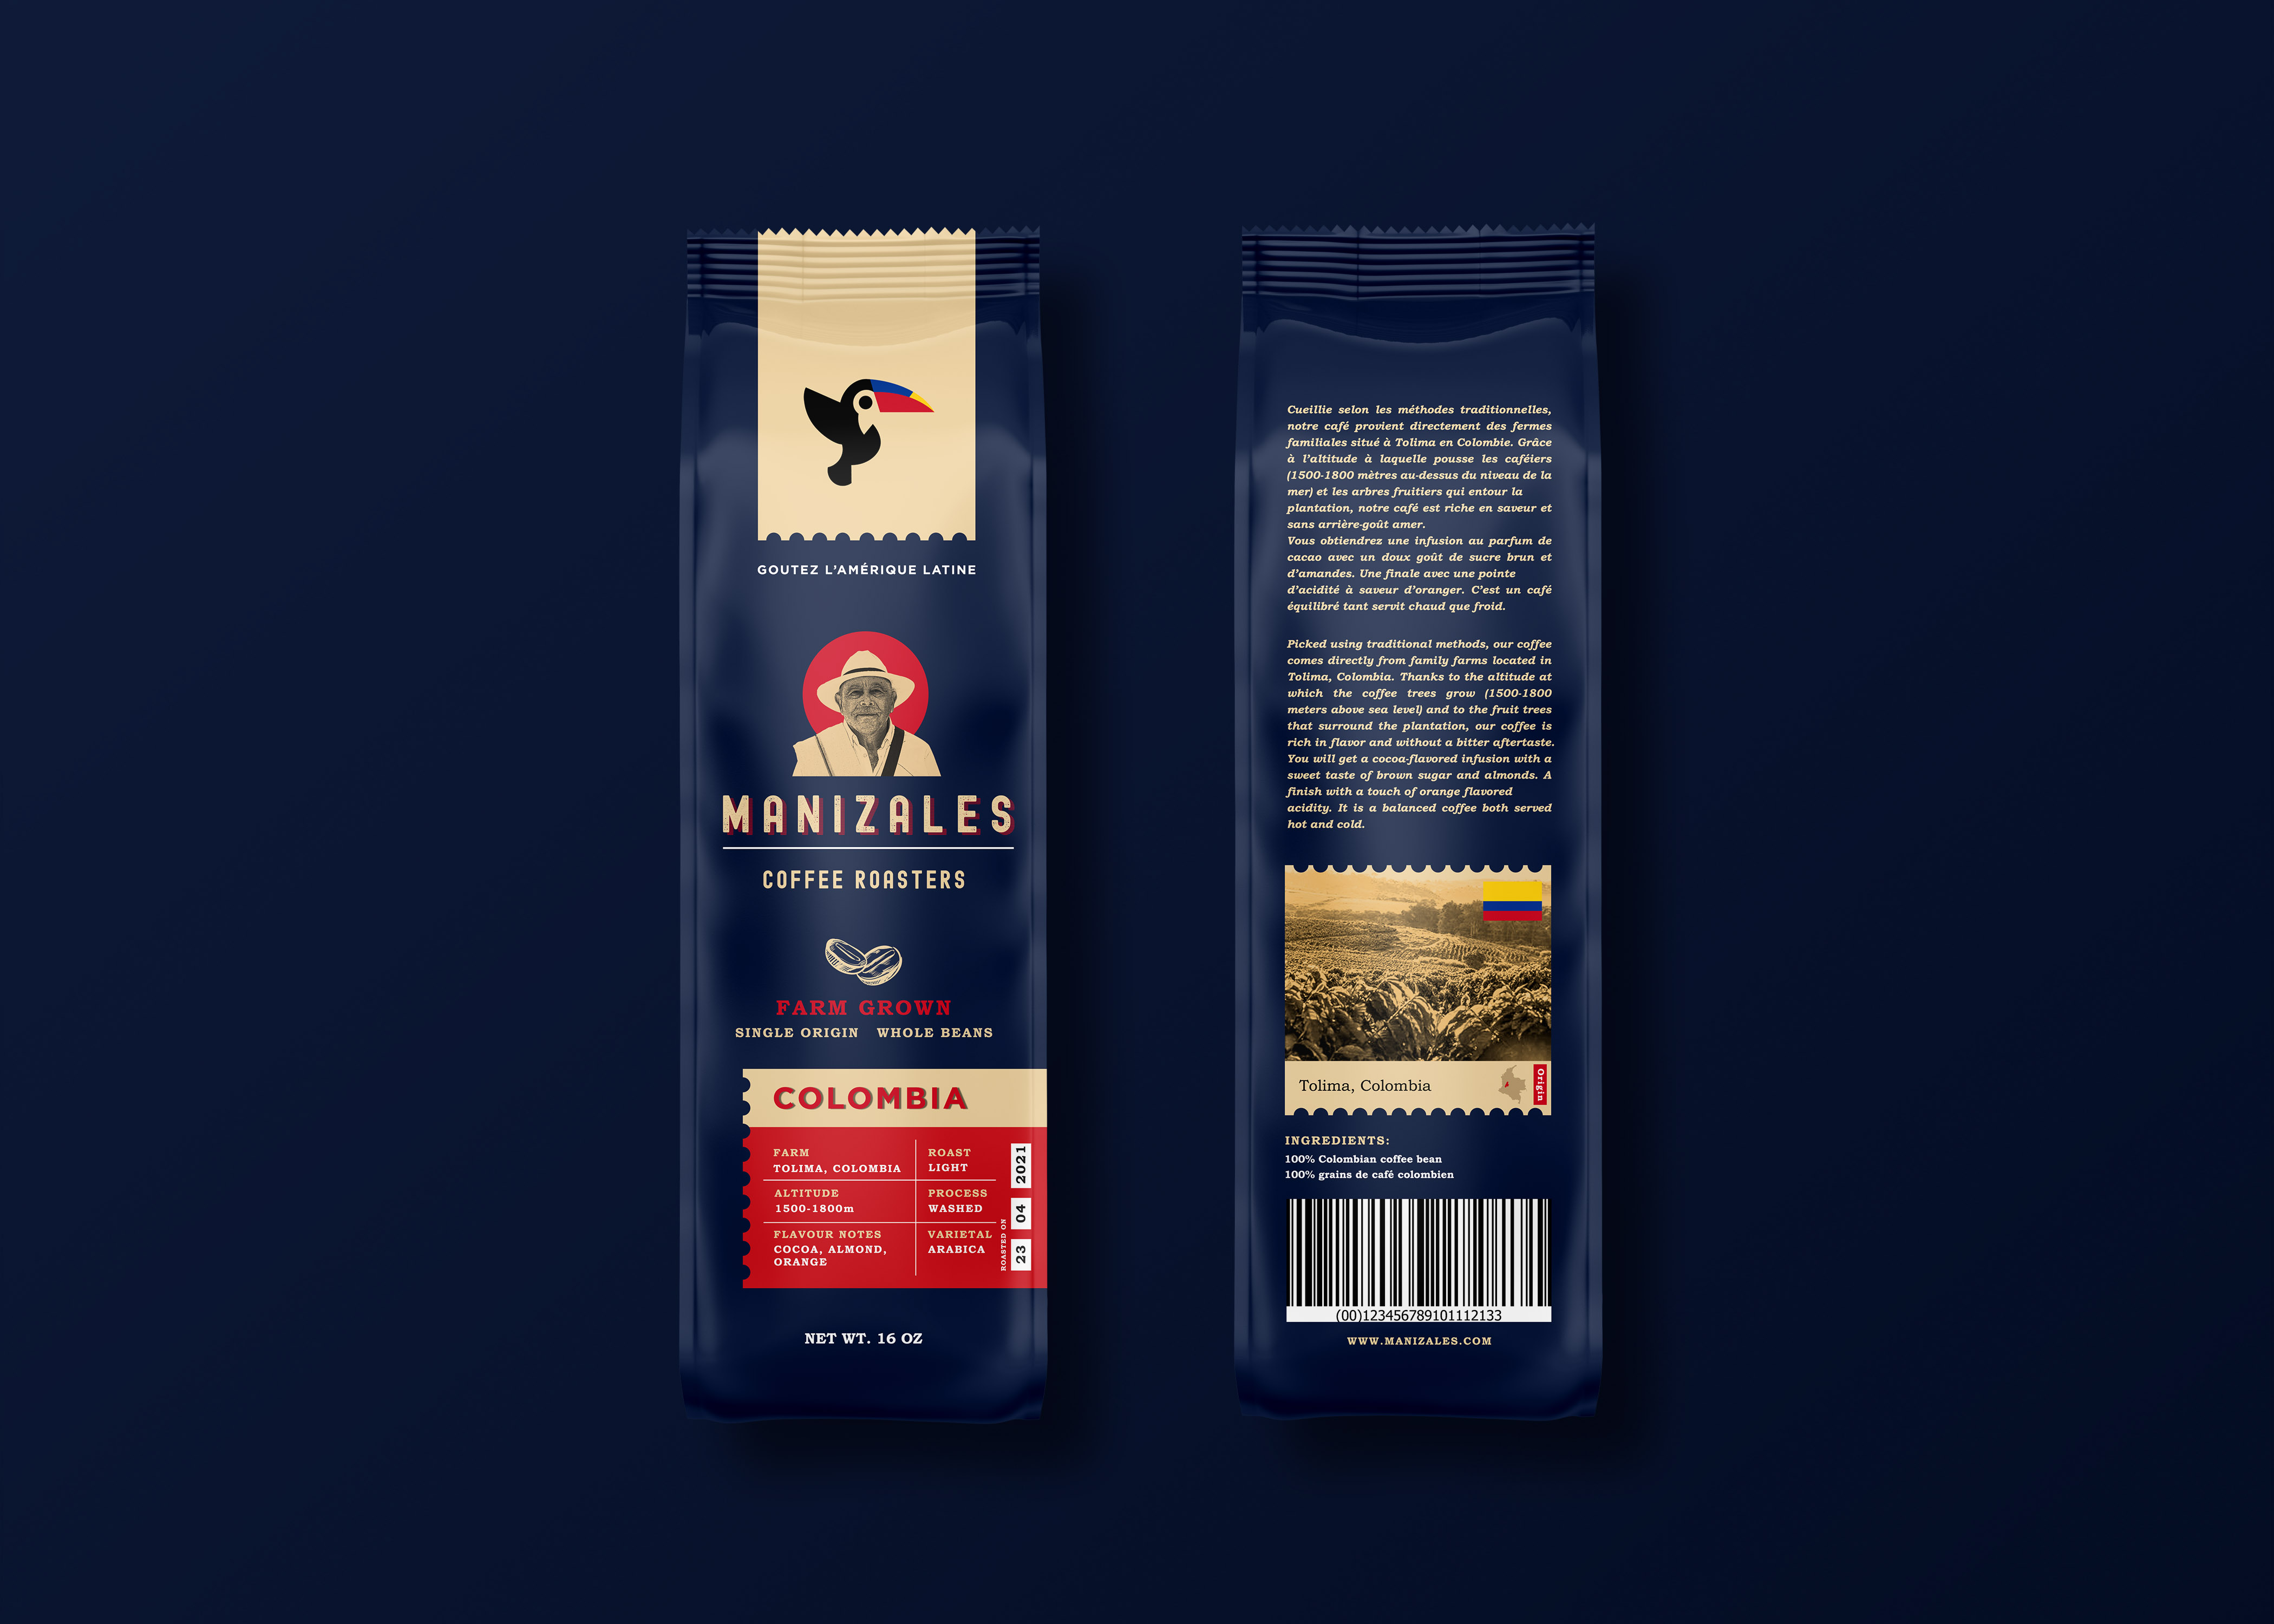 Manizales Coffee Roasters Colombia Packaging Design